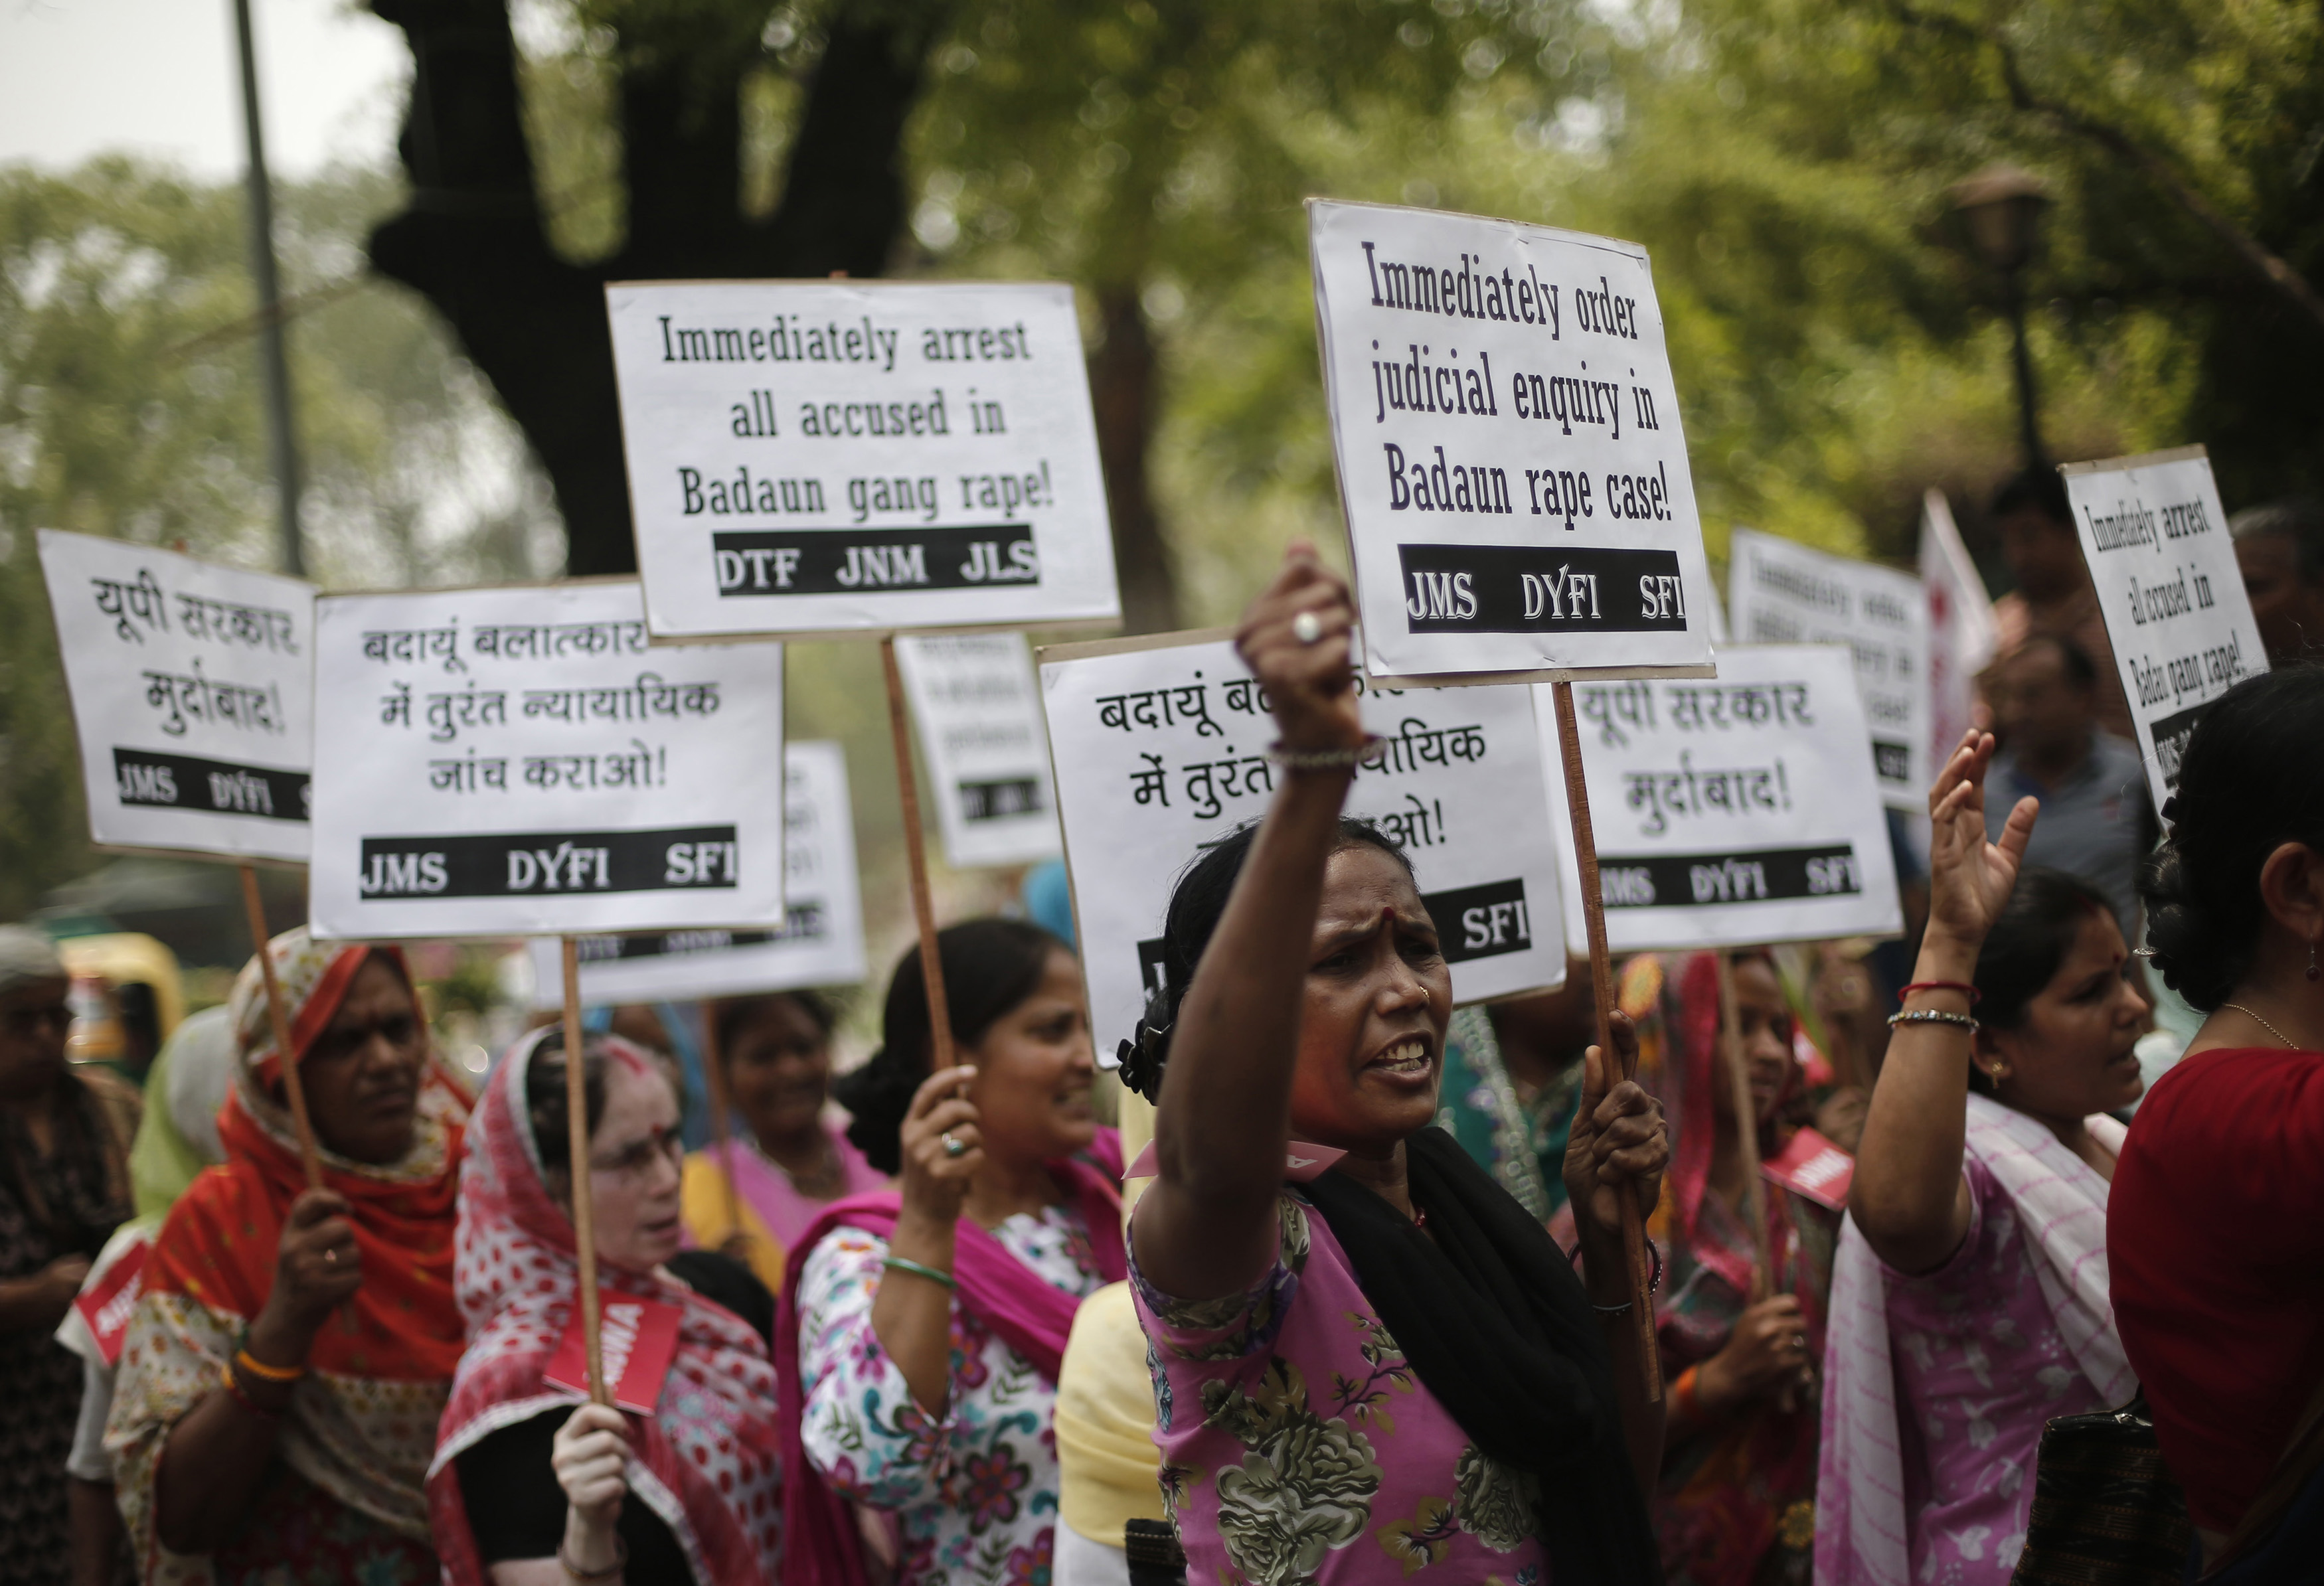 Demonstrators from the All India Democratic Women's Association hold placards and shout slogans during a protest against the rape and murder of two teenage girls, in New Delhi on May 31, 2014